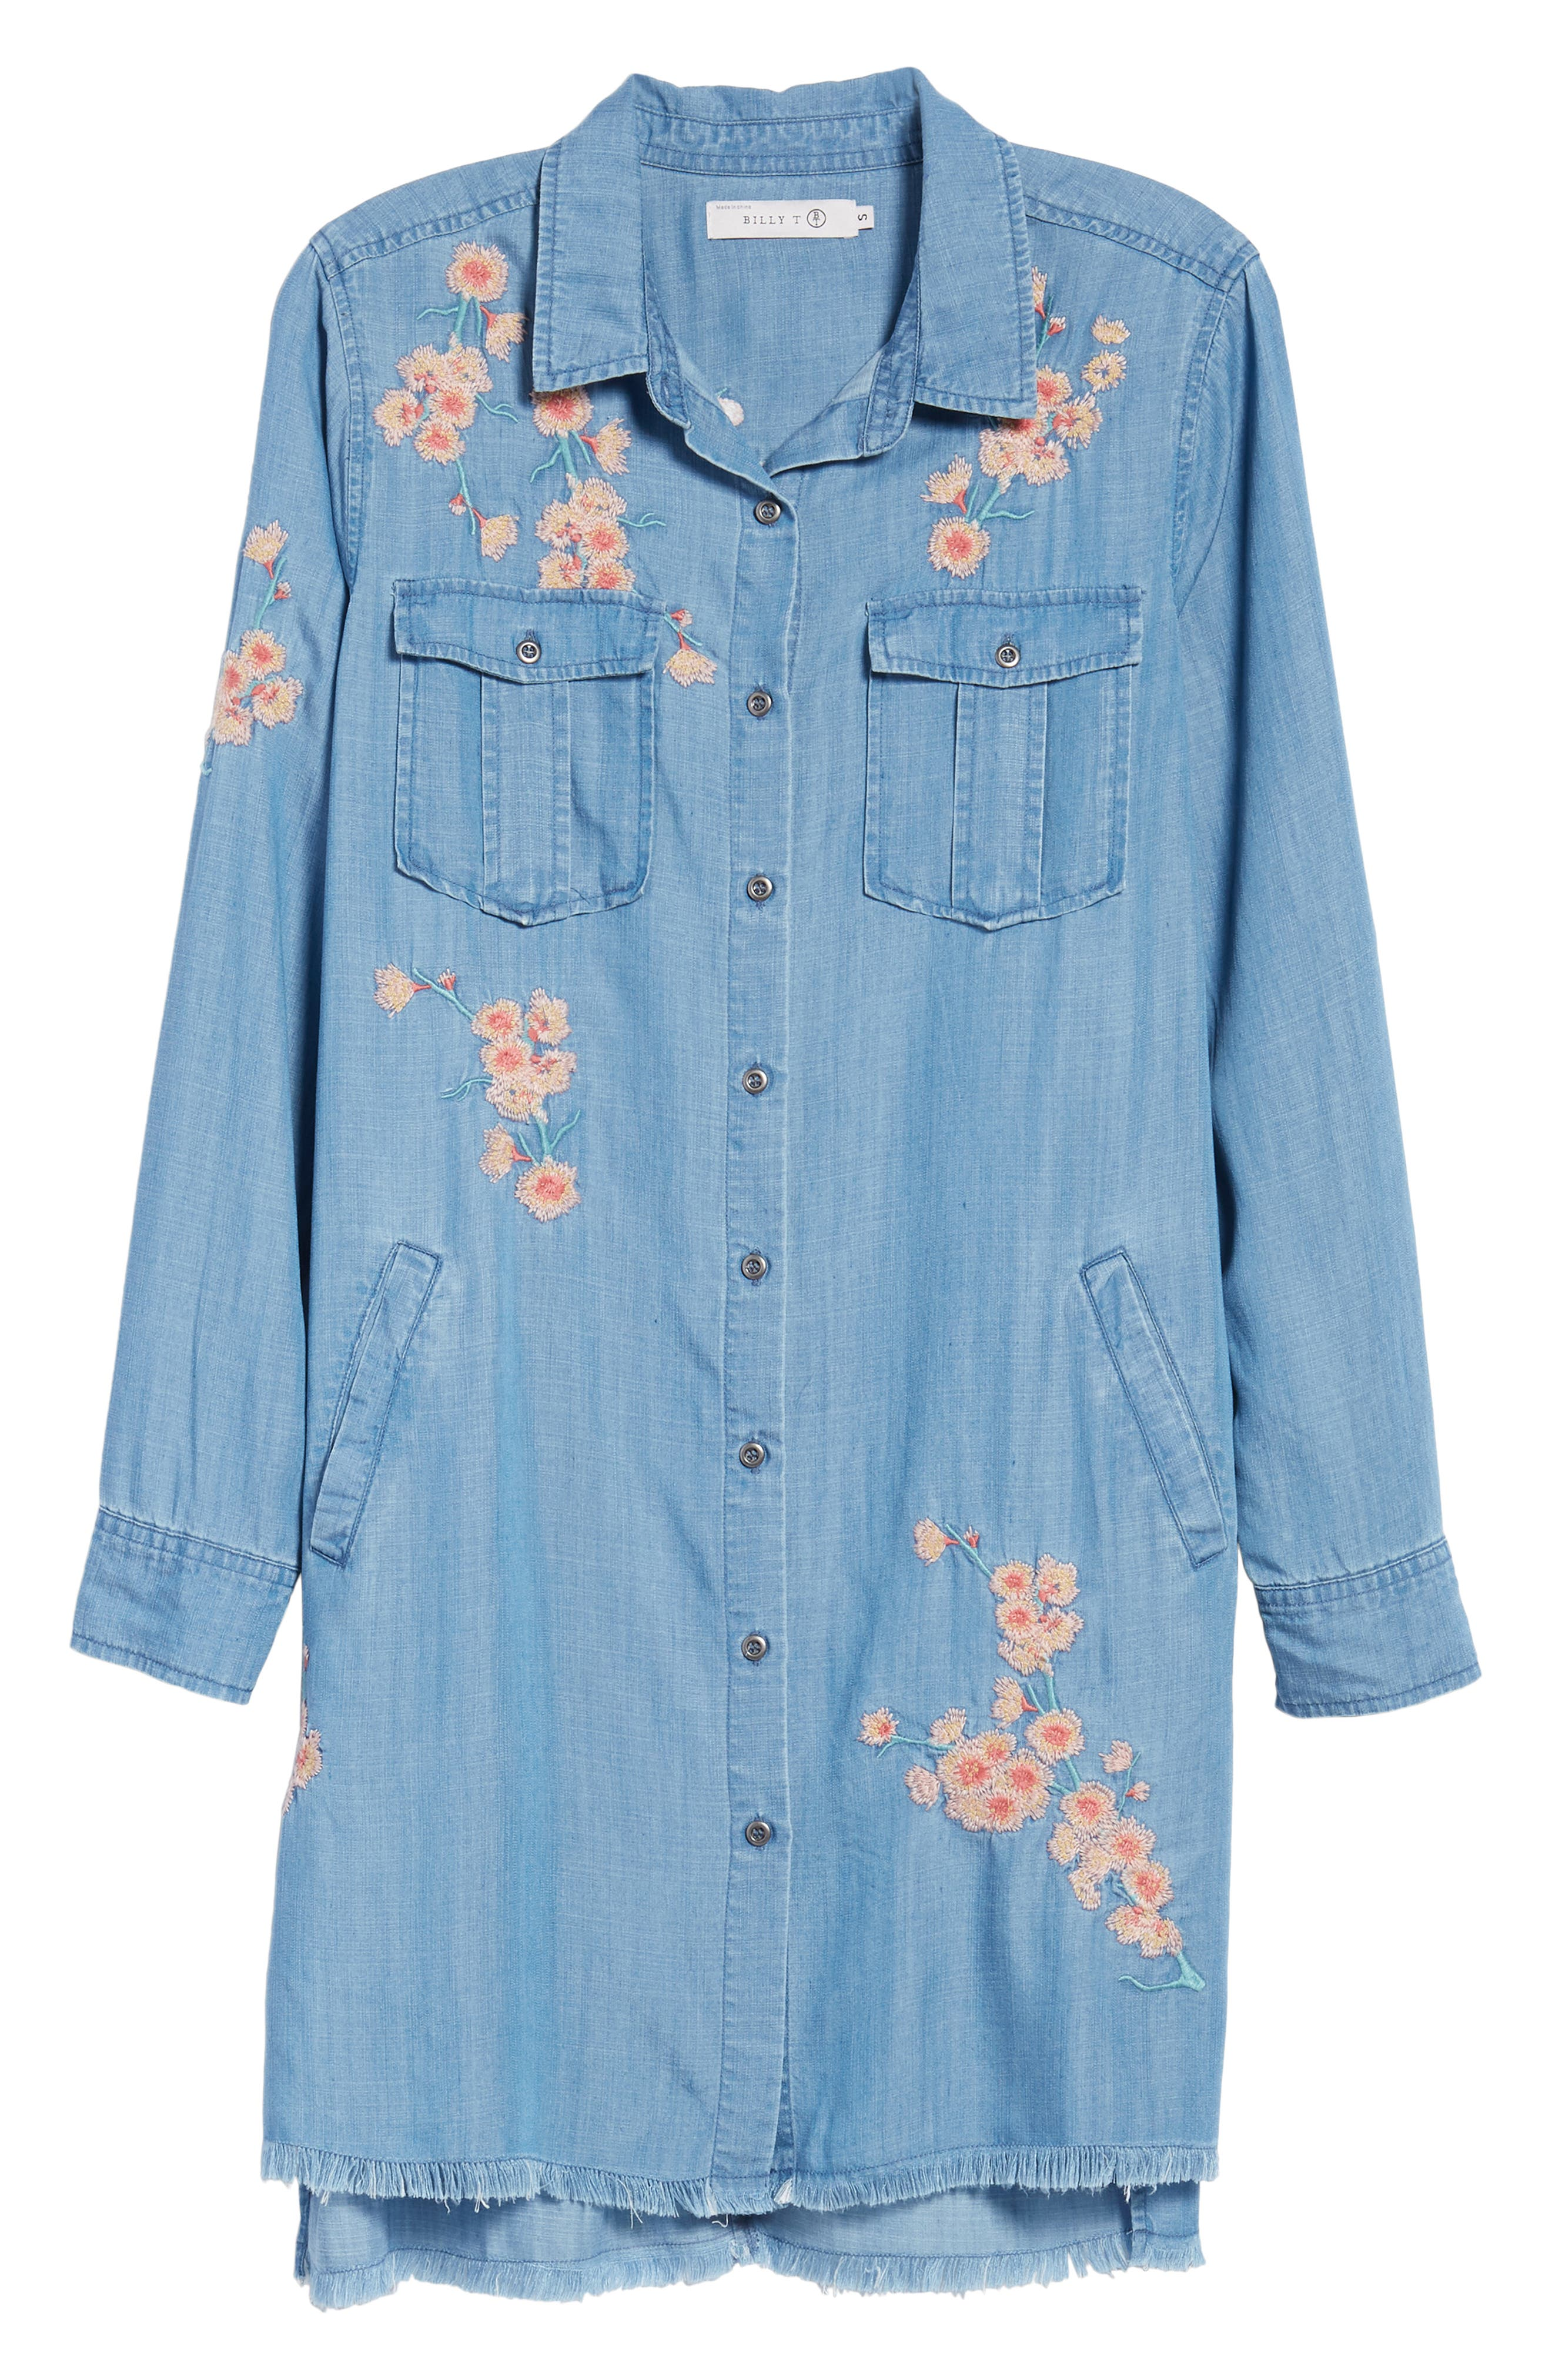 Cherry Blossom Shirtdress,                             Alternate thumbnail 7, color,                             421